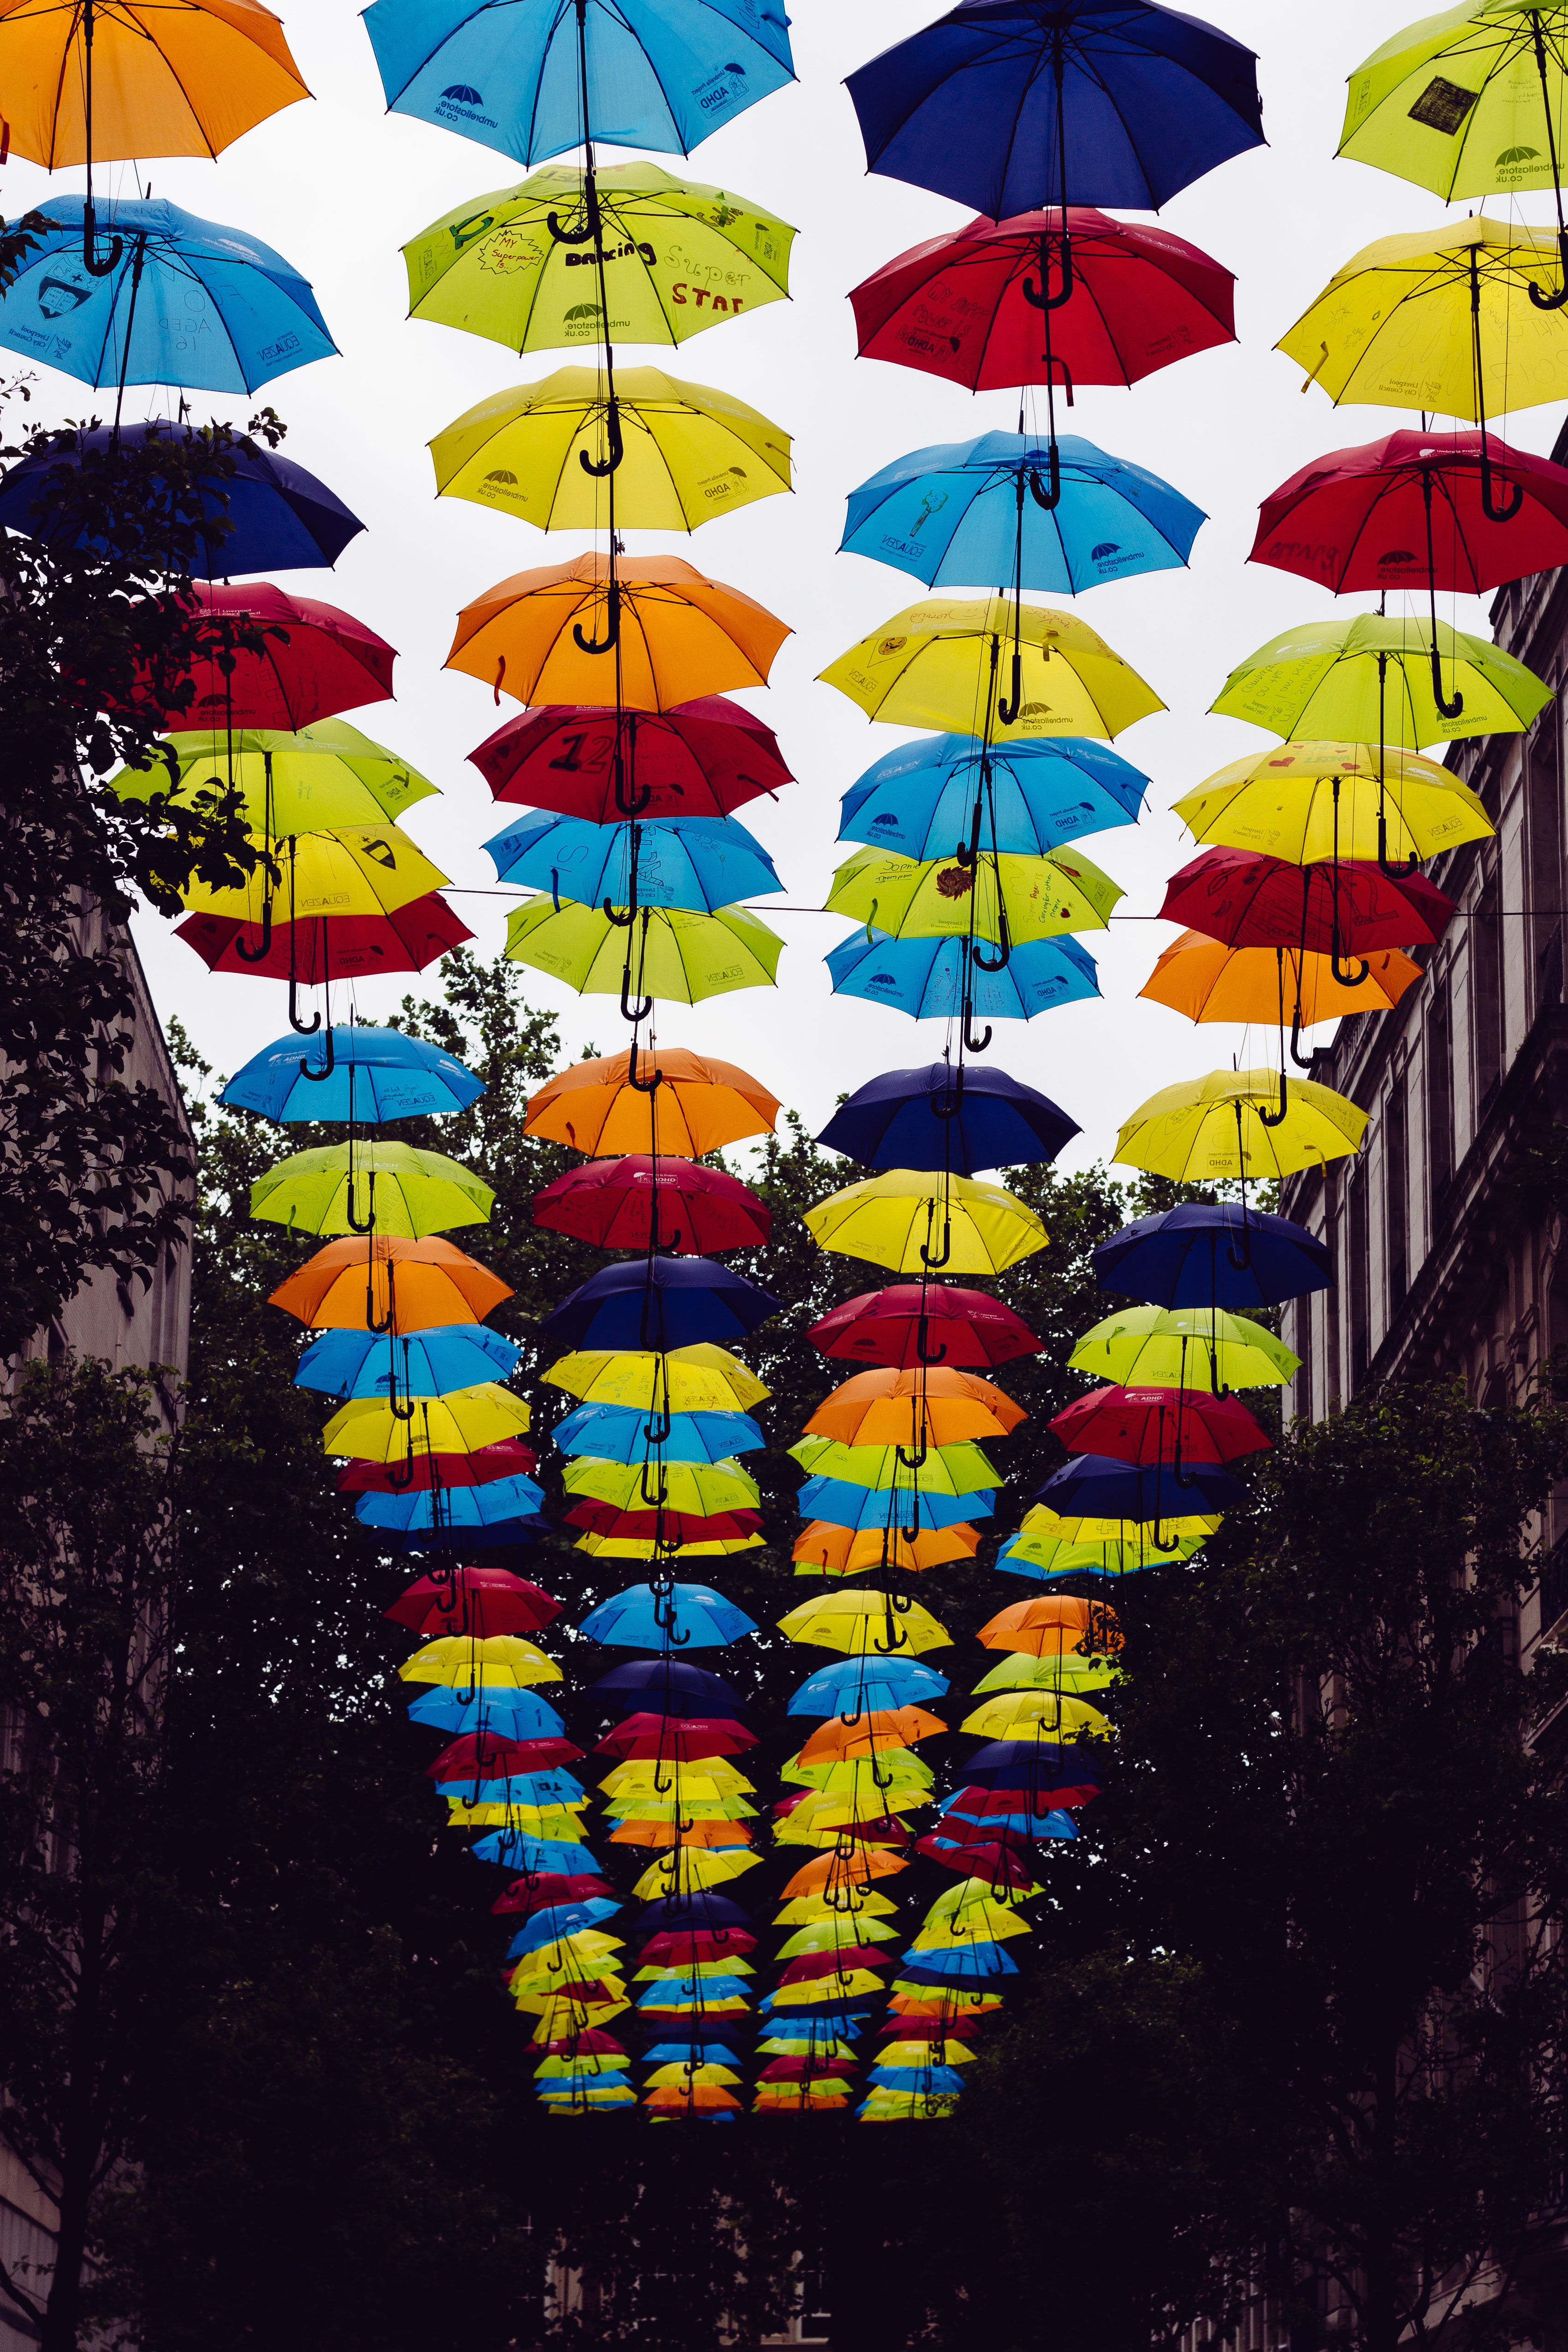 Brightly colored umbrella street art decorations between buildings and trees in Liverpool, England, United Kingdom